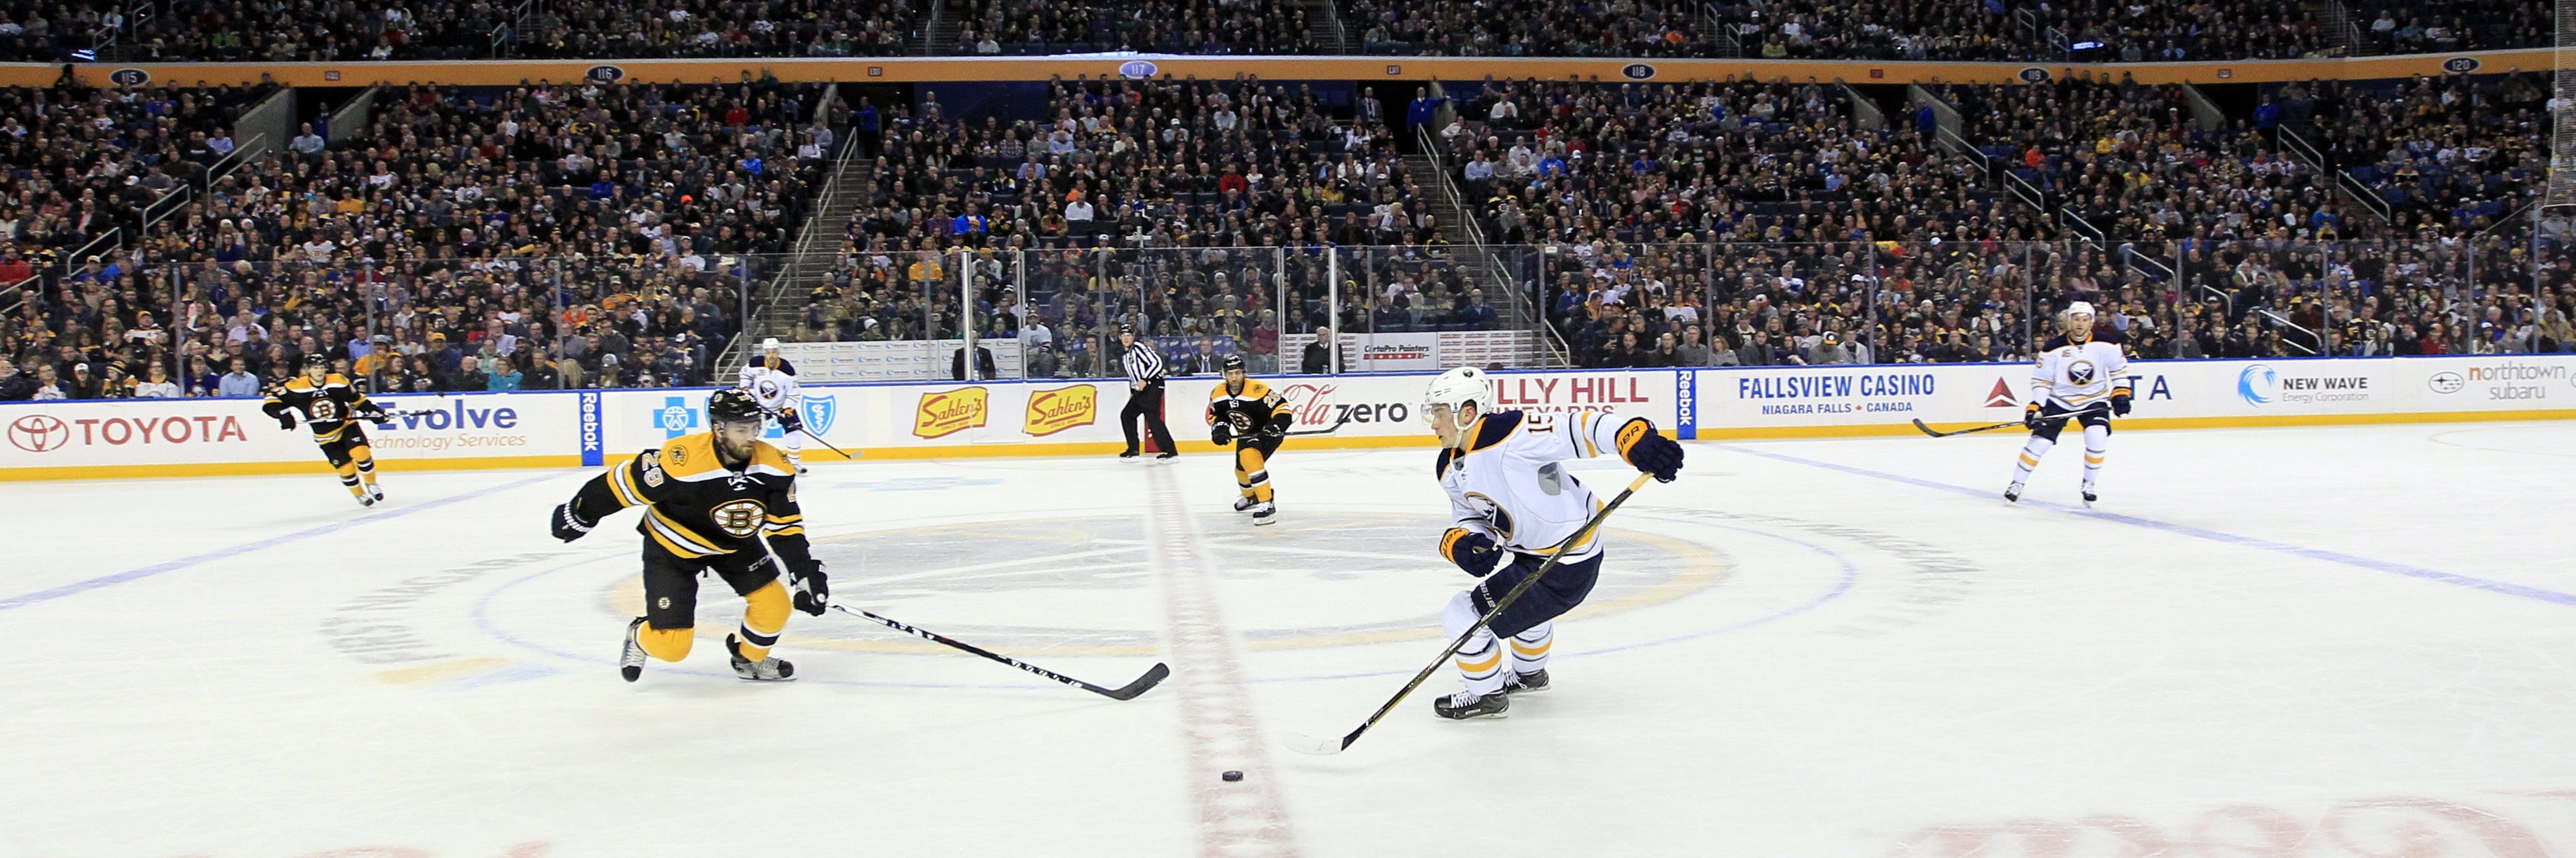 Jack Eichel and the Sabres have had a horrible season at home to this point.